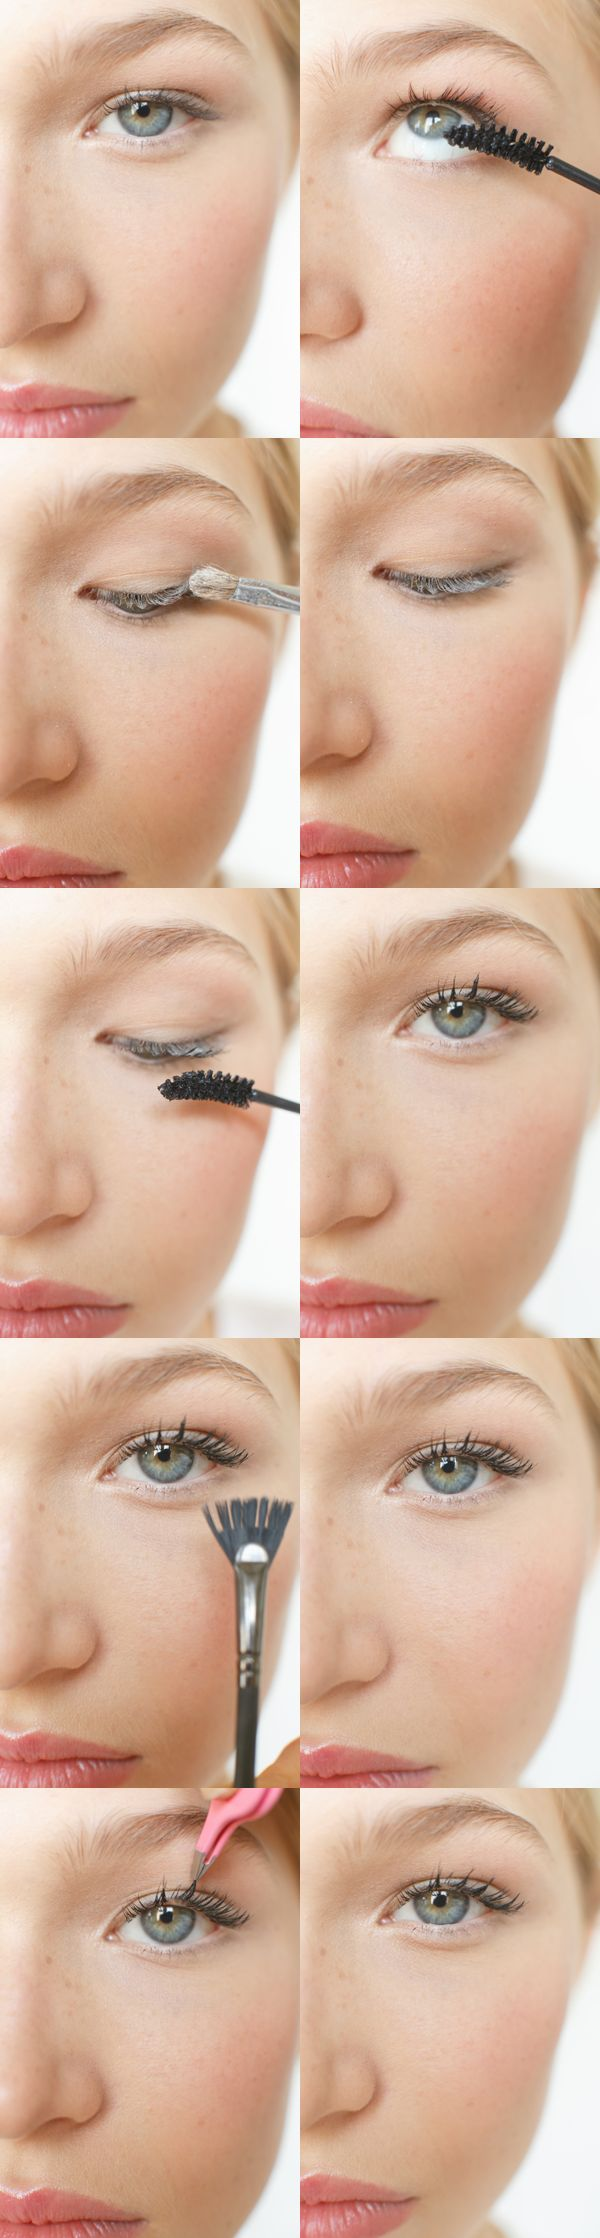 How to Fake Thicker Lashes Tutorial - Find the best a?�How Toa?? DIY Wedding Projects at OnceWed.com #diyeyemakeup #diymakeup #diyweddingmakeup | See more about Lashes, Eyelashes and Tutorials.